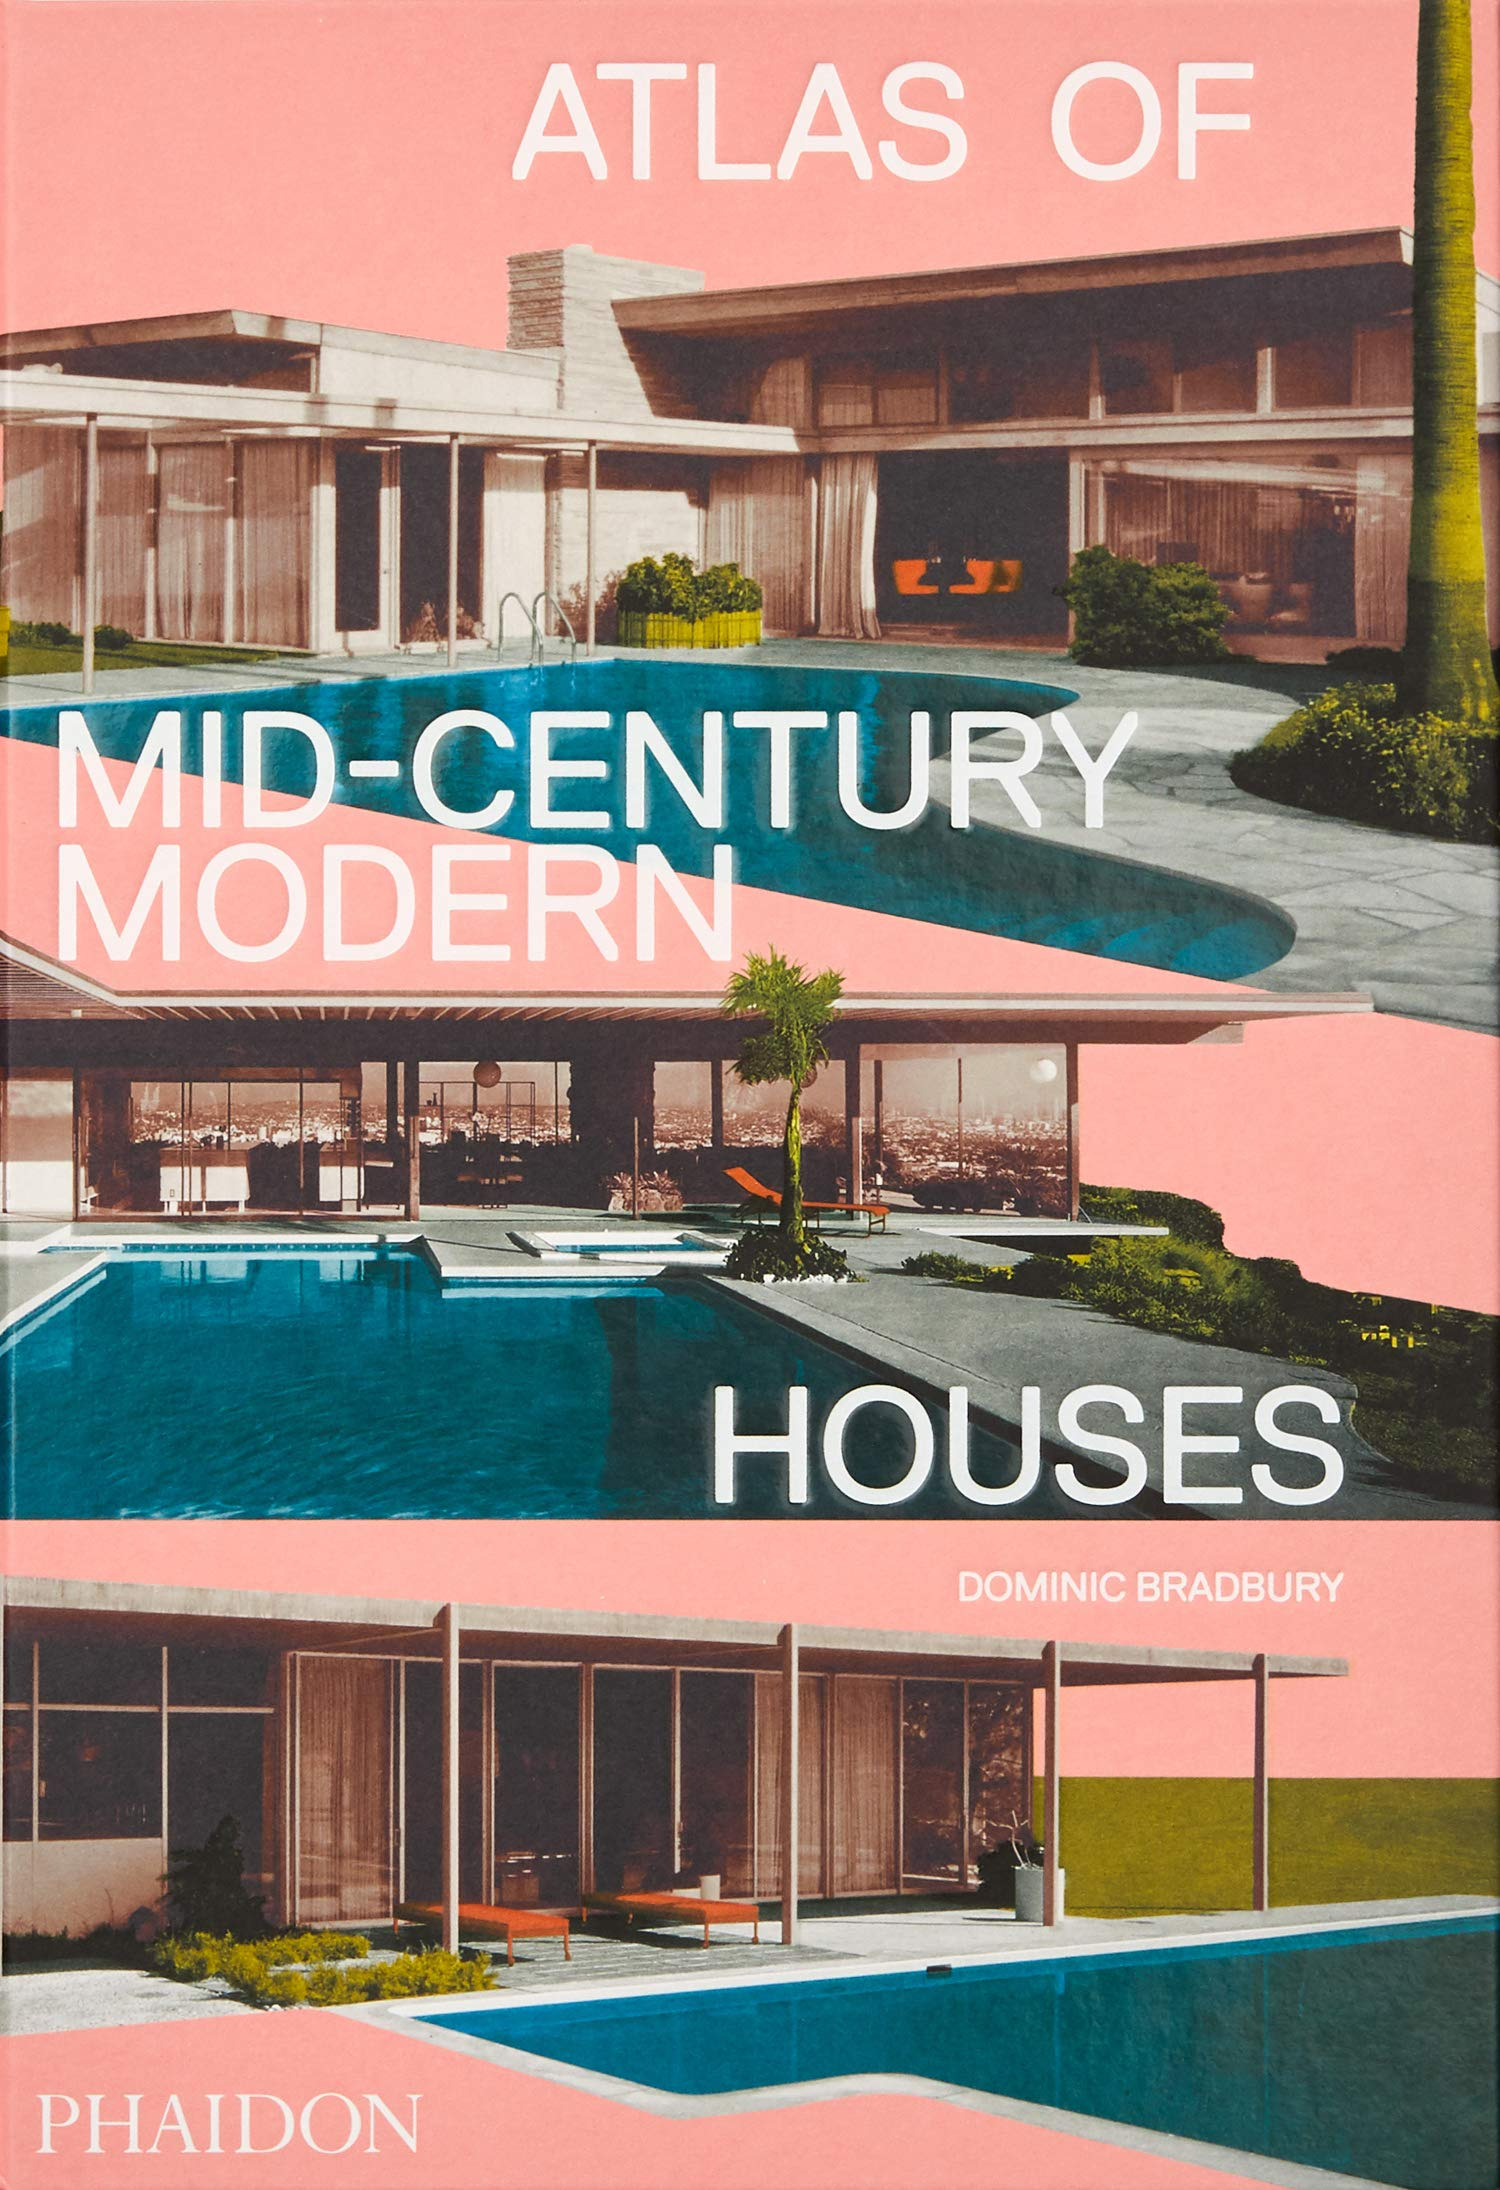 The Most Modern House Awesome atlas Of Mid Century Modern Houses Bradbury Dominic